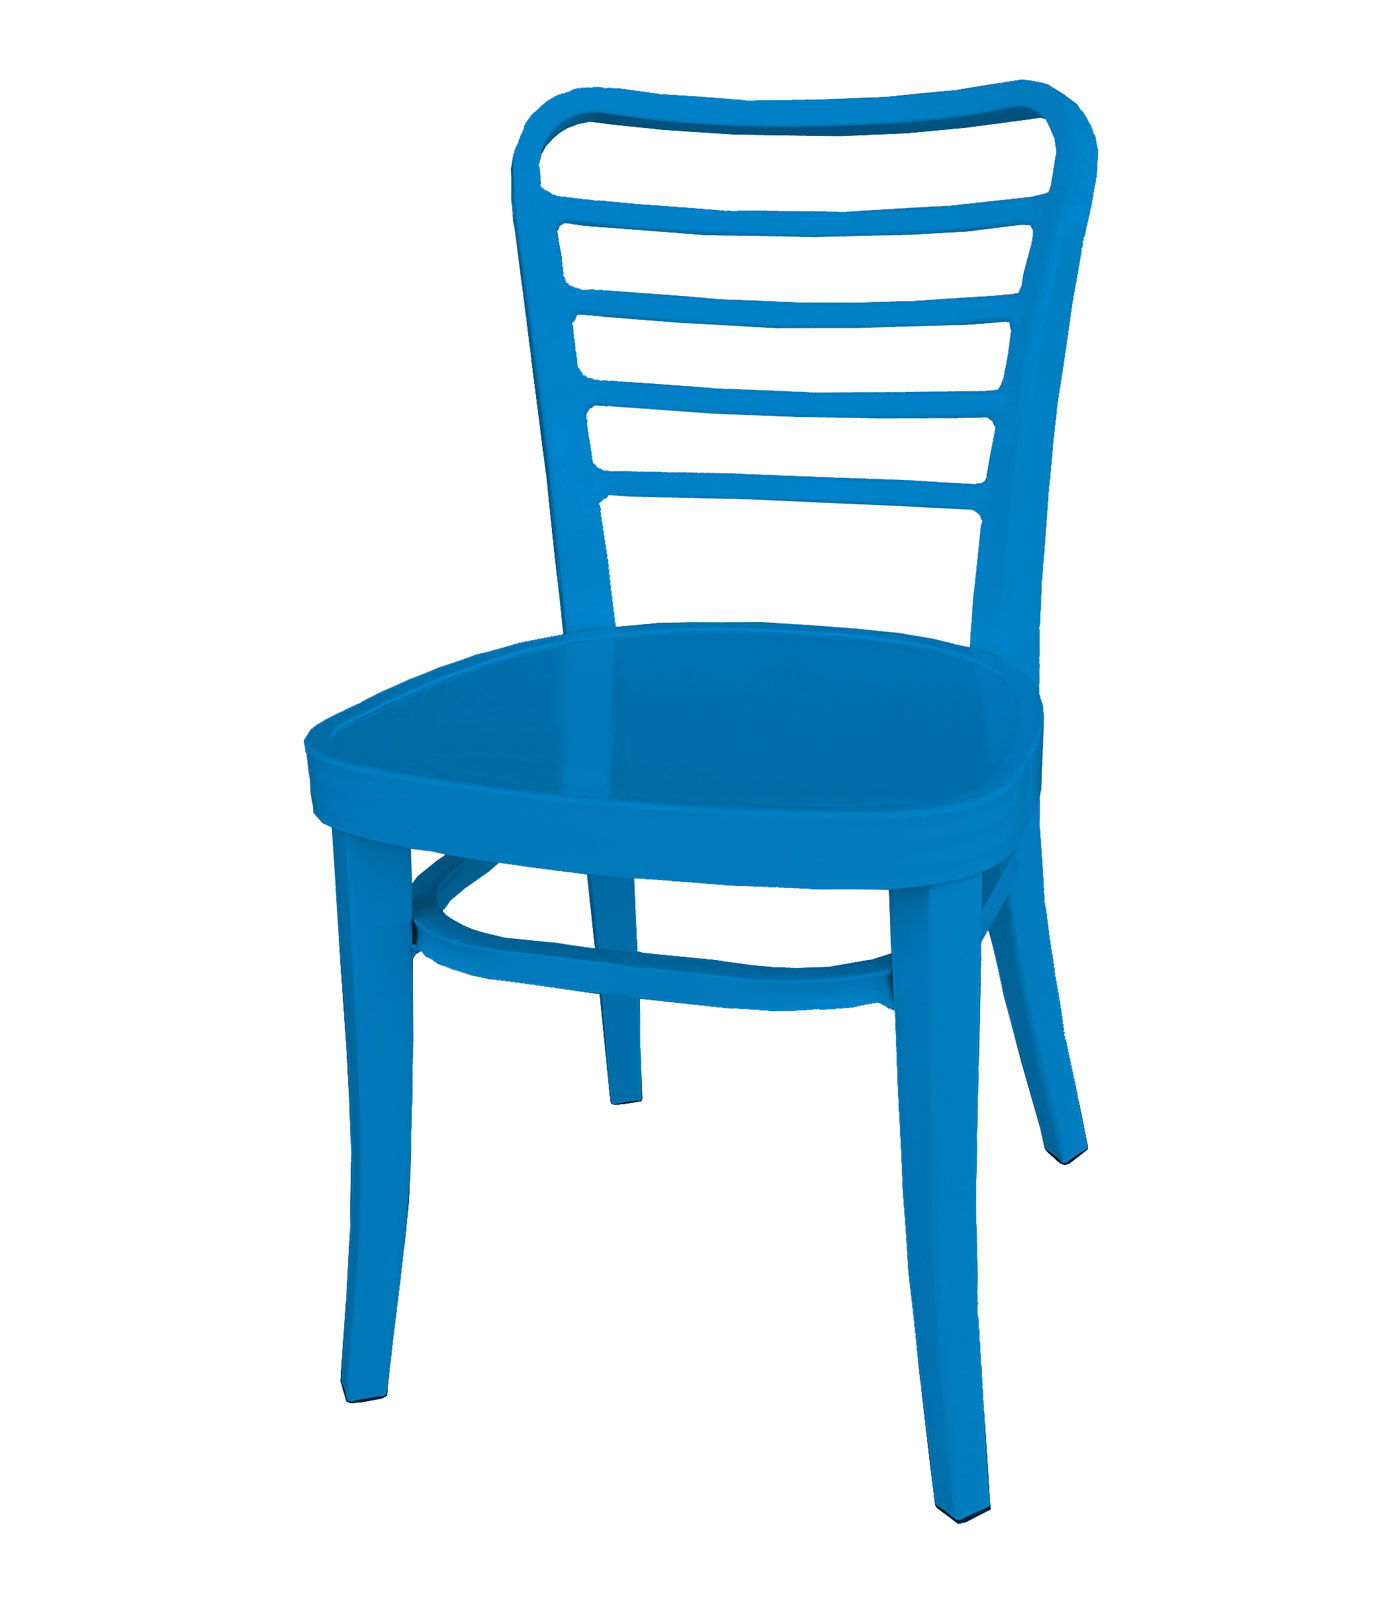 Blue chair clipart graphic black and white stock Blue Chair Clipart - Clip Art Library graphic black and white stock